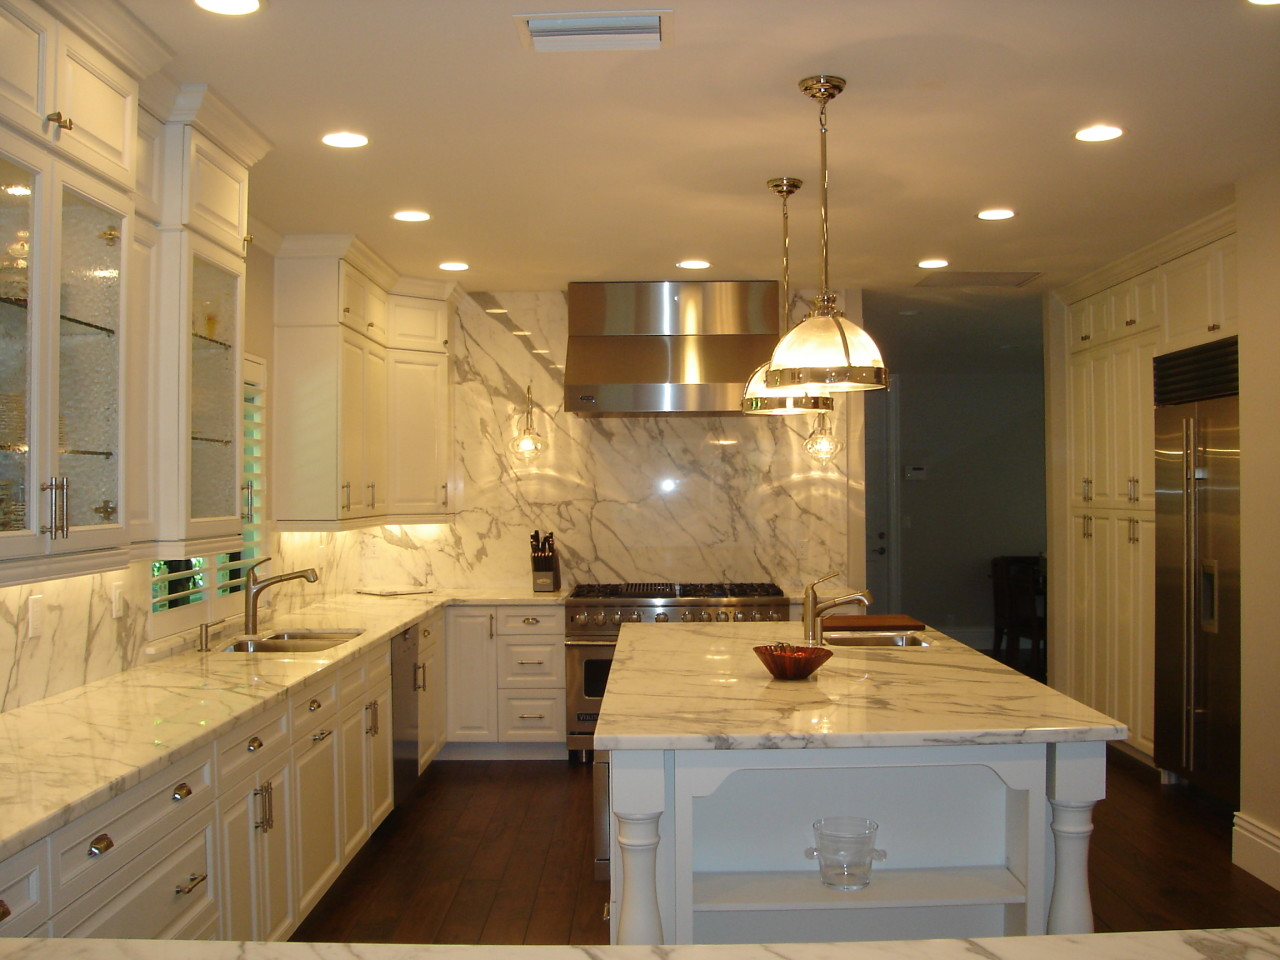 transitional kitchen design | bath & kitchen creations | south florida